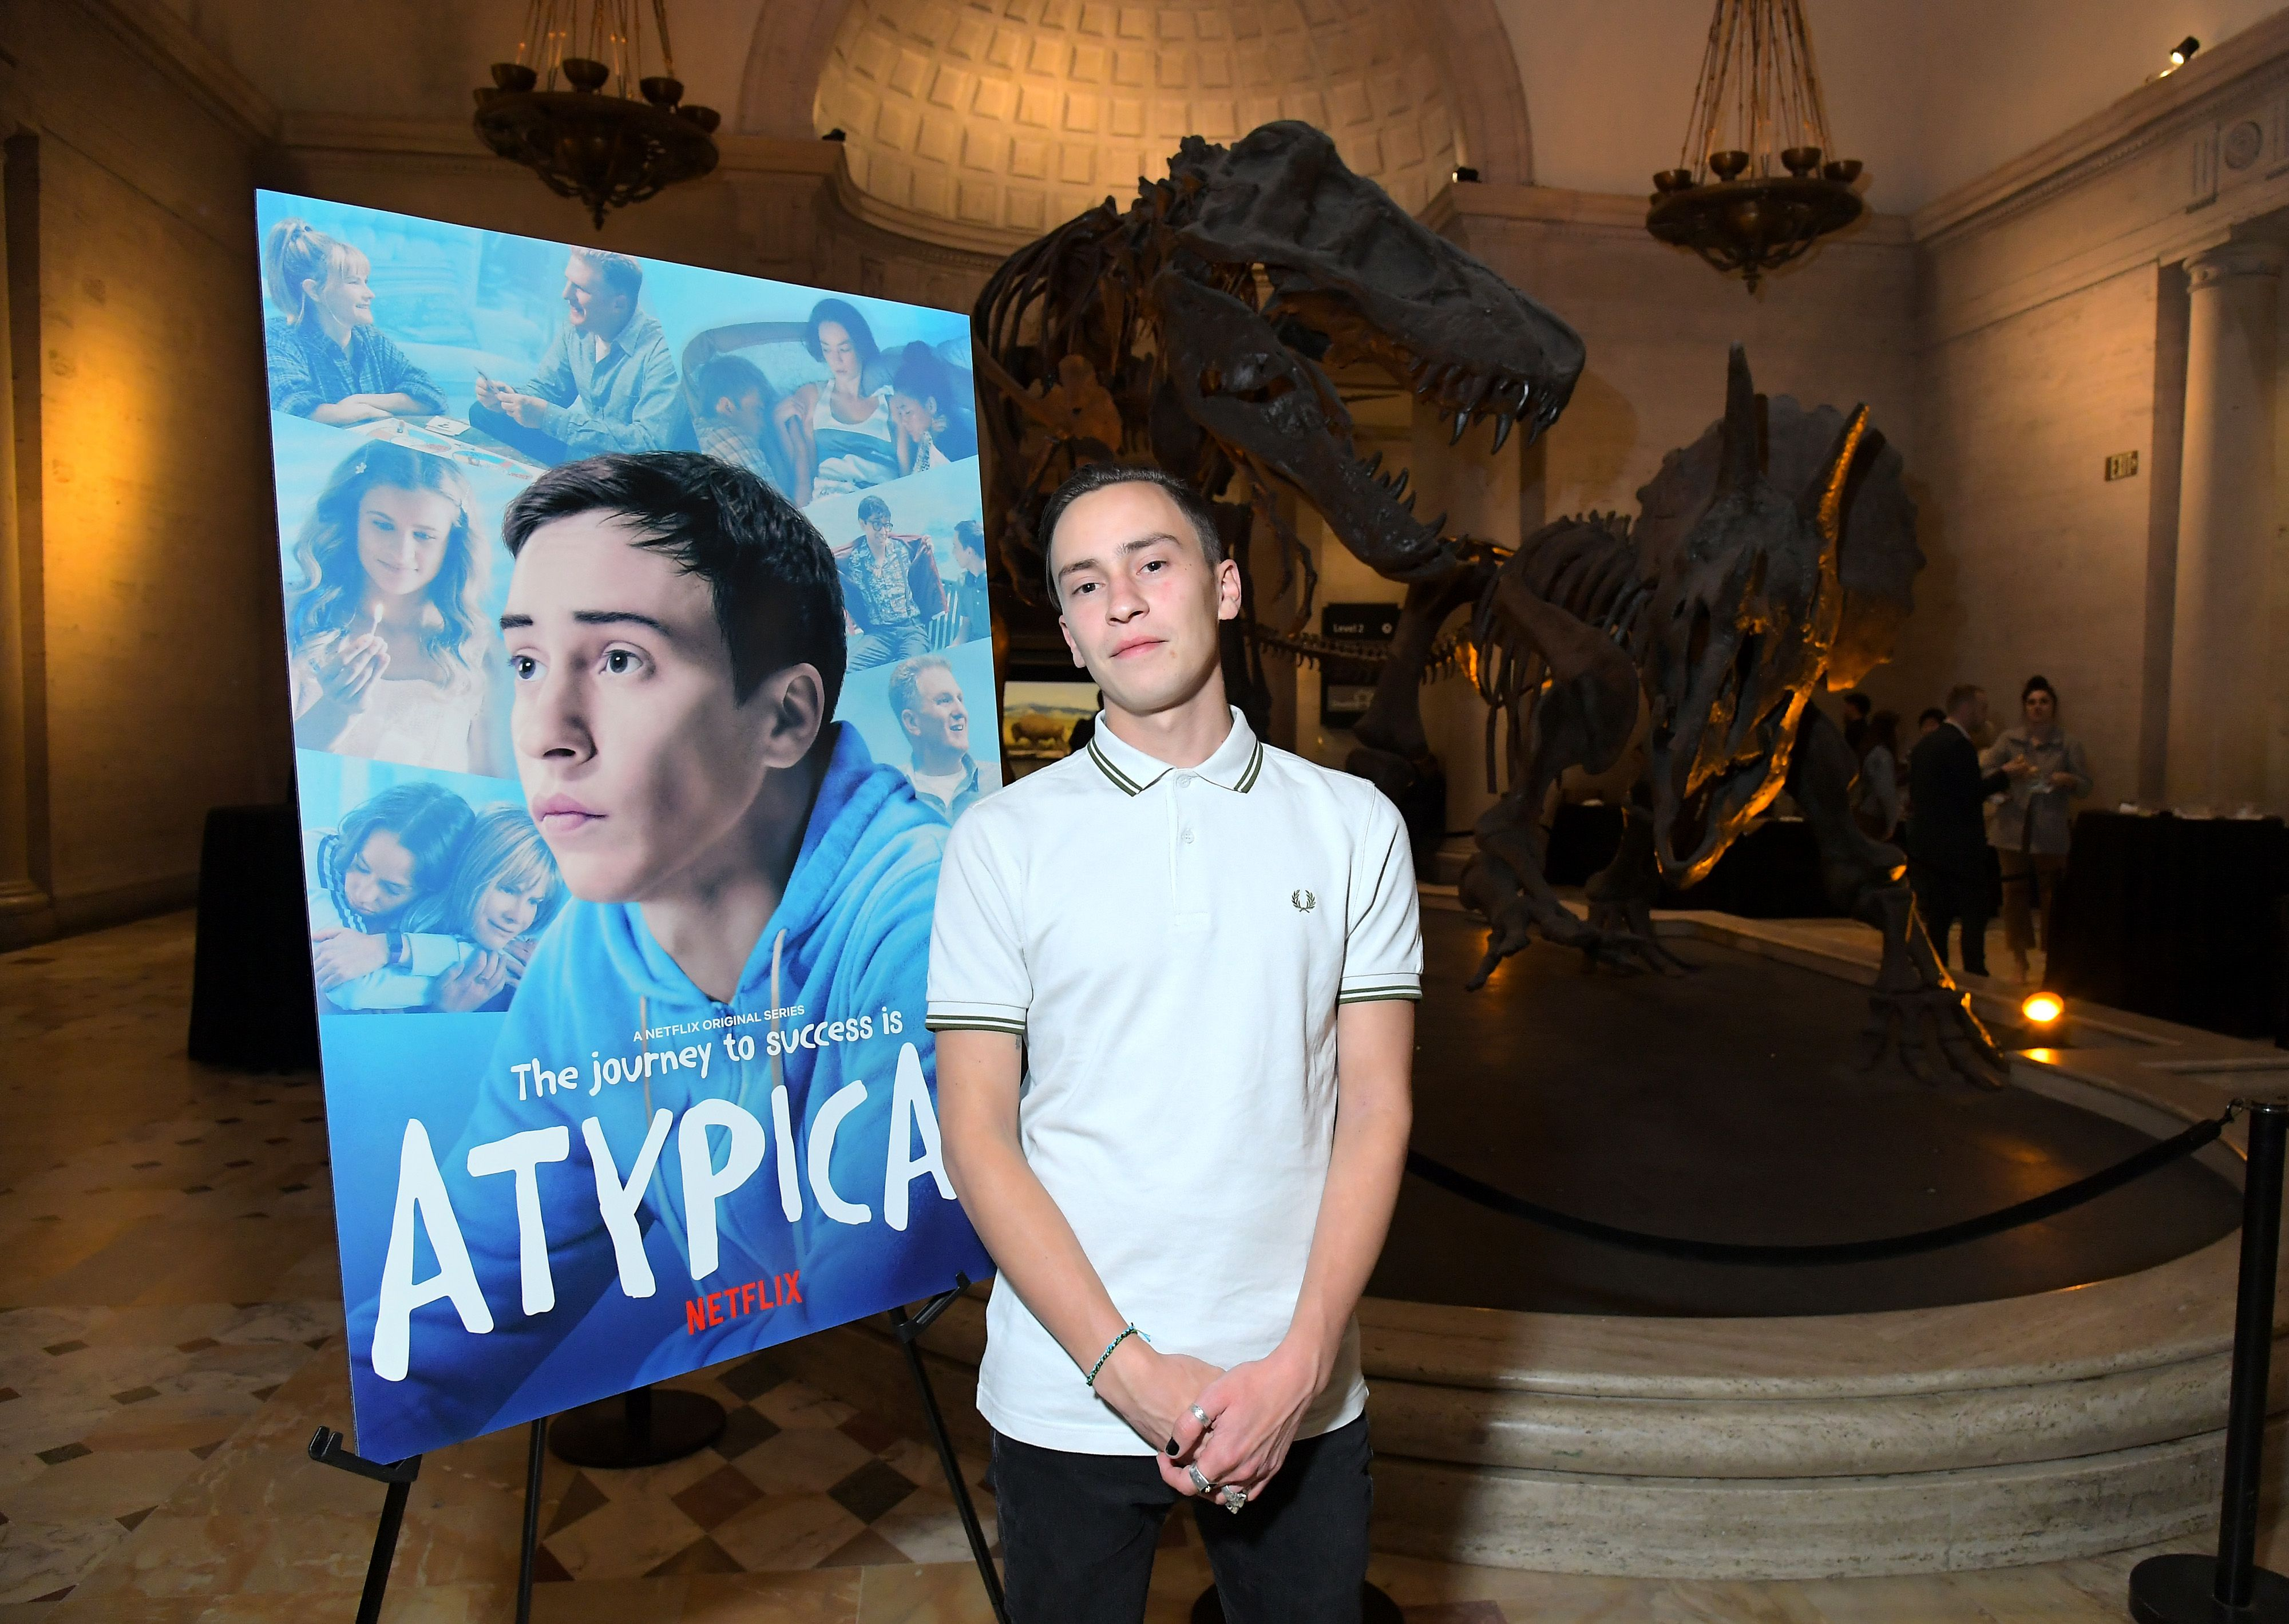 Keir Gilchrist stands in a white shirt next to an 'Atypical' sign.